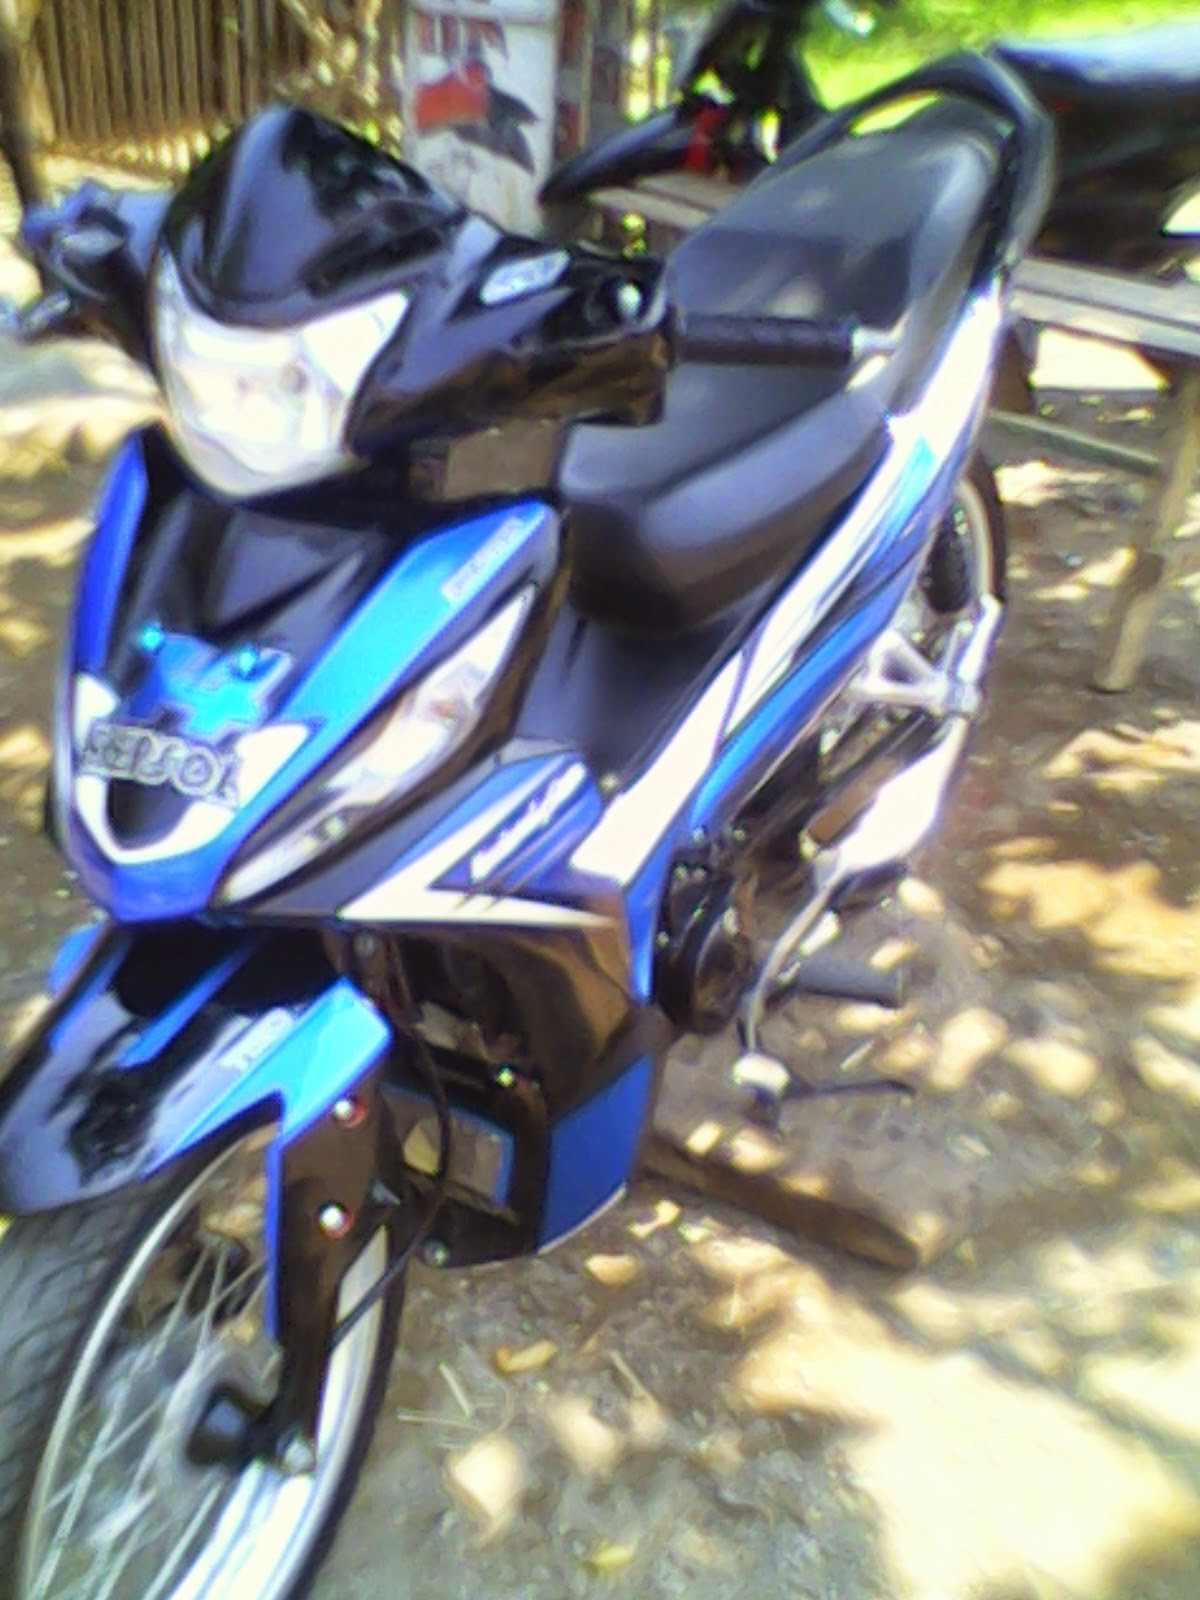 Revo Fit fi Modif Modification Revo Fit fi